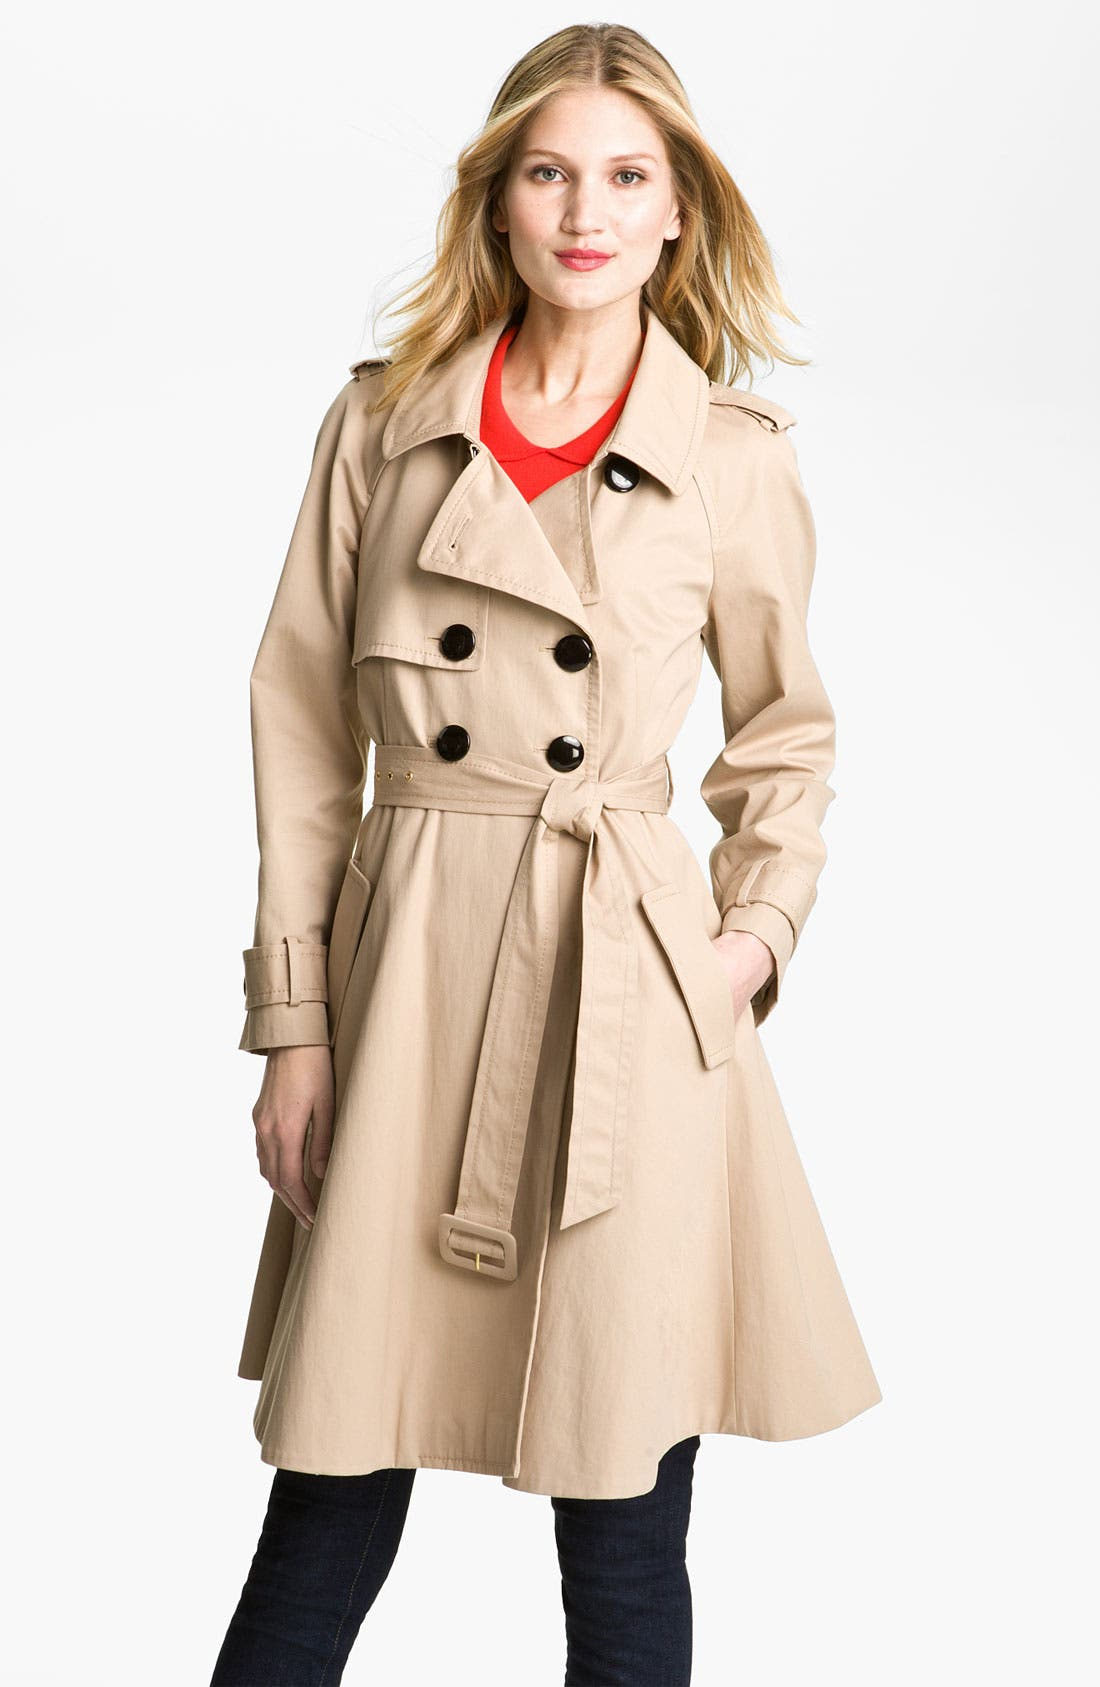 Alternate Image 1 Selected - kate spade new york 'dianne' trench coat